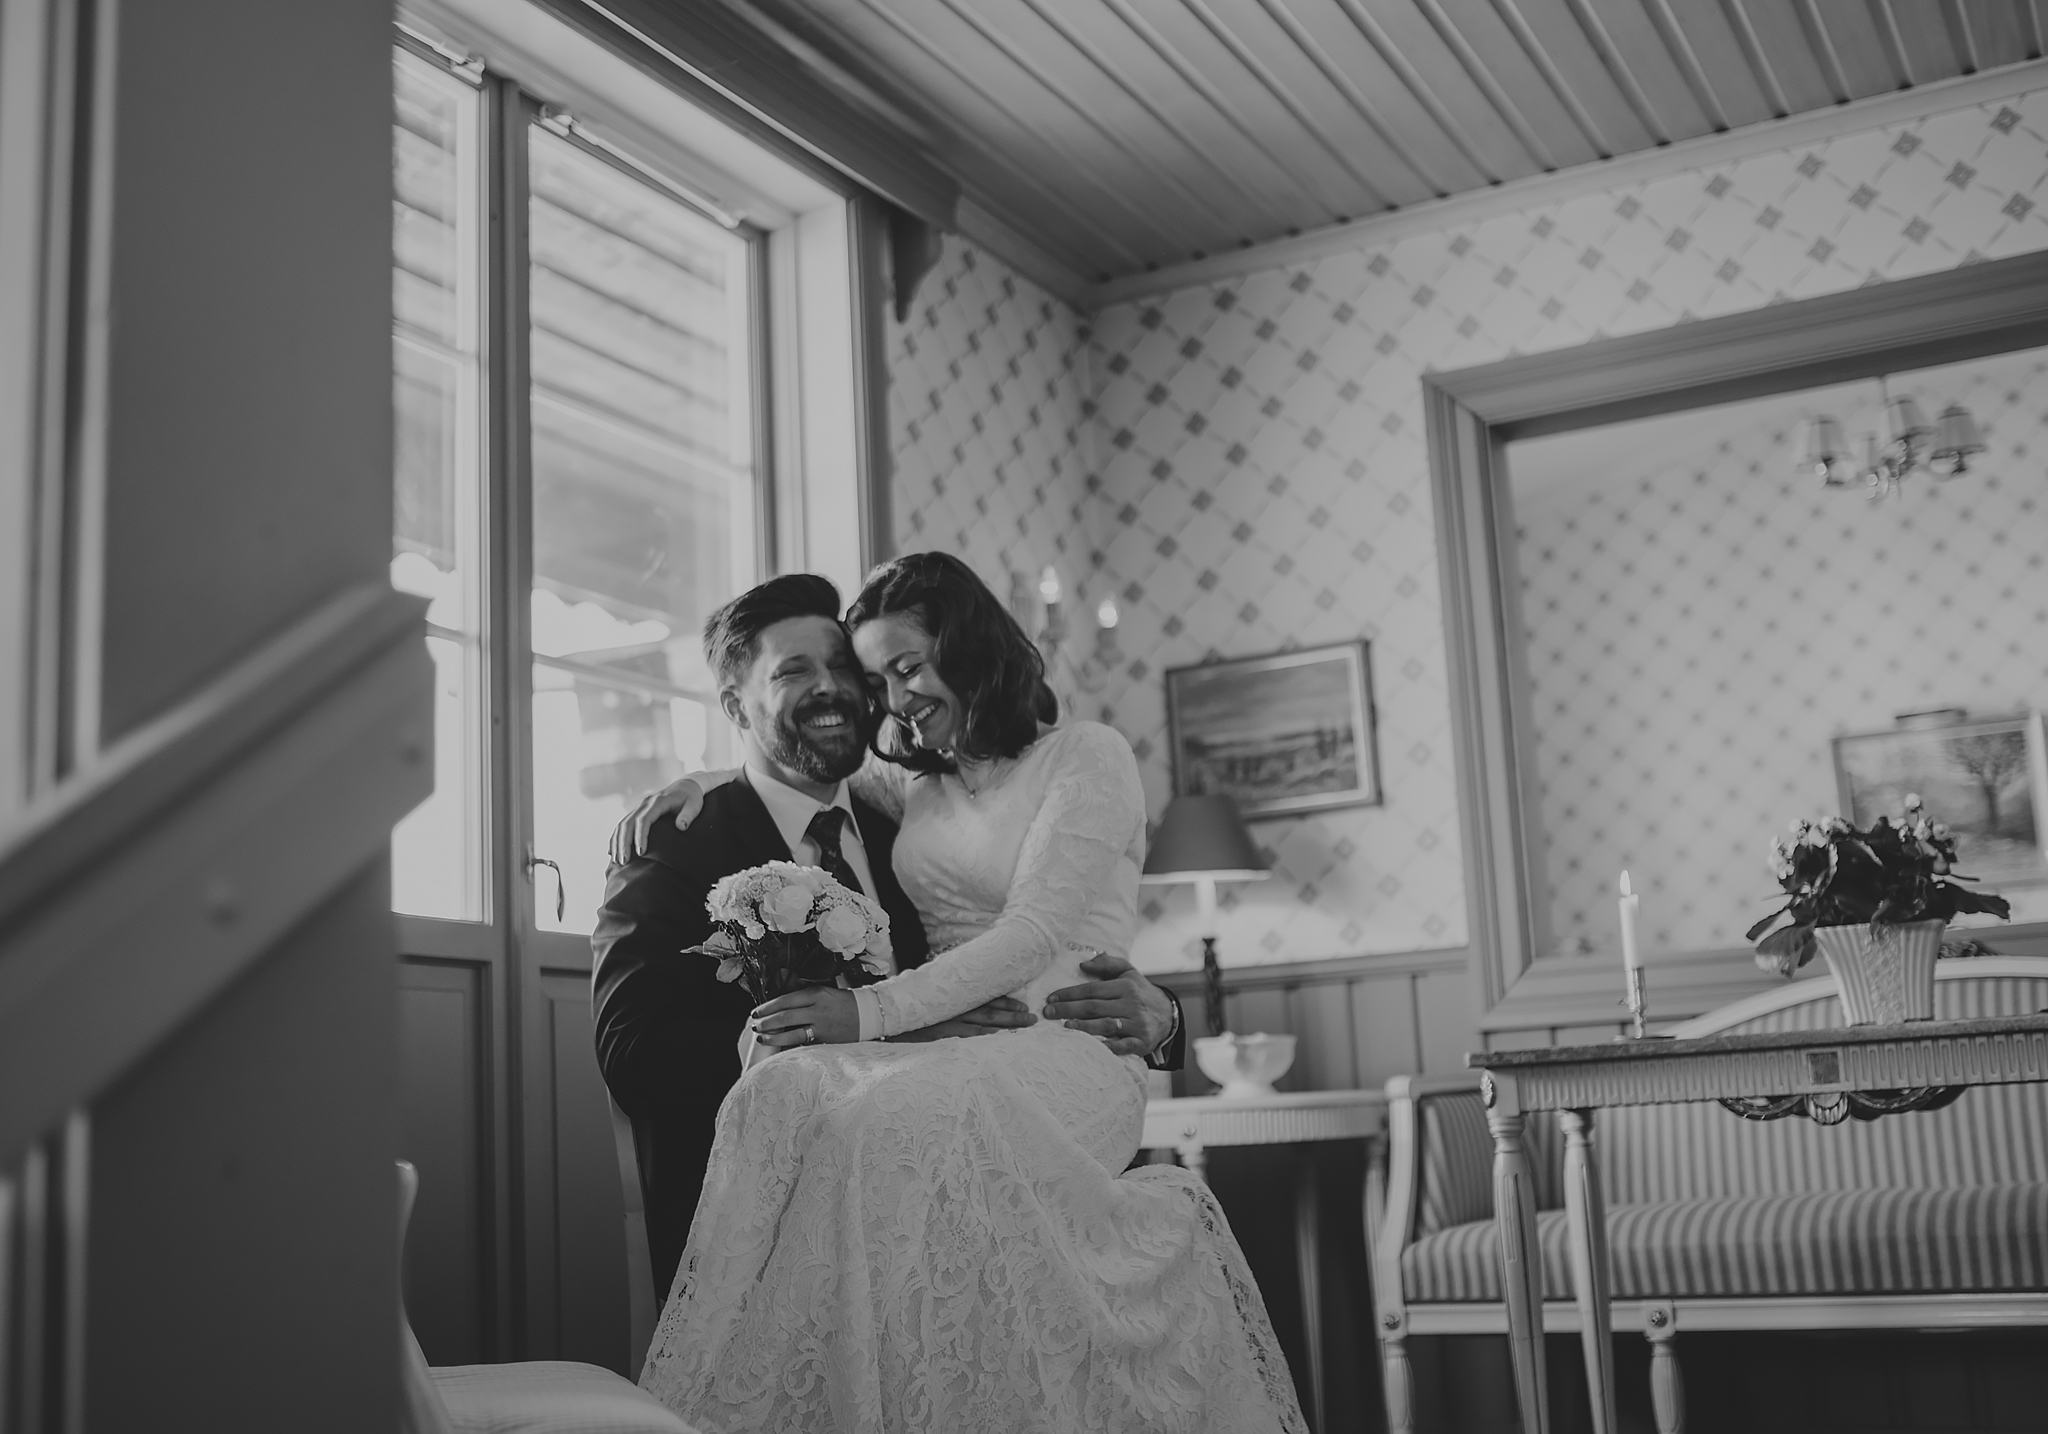 Winterwedding in Tällberg - Aisha & Henric